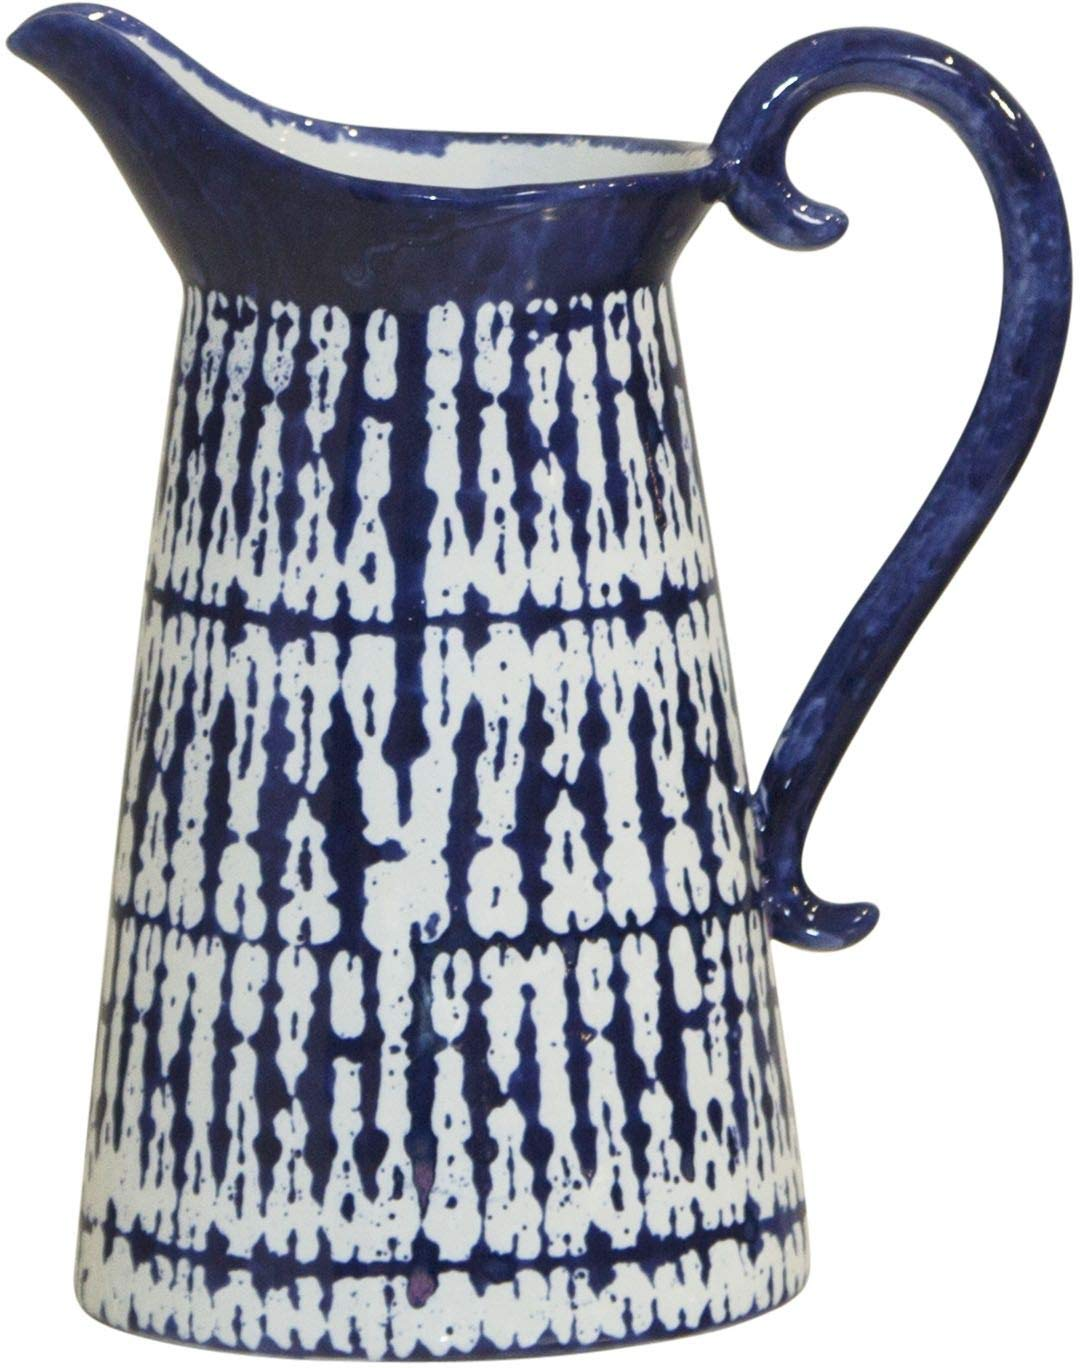 Home Essentials 11-inch High Modern Blue Hand Painted Pitcher by Home Essentials